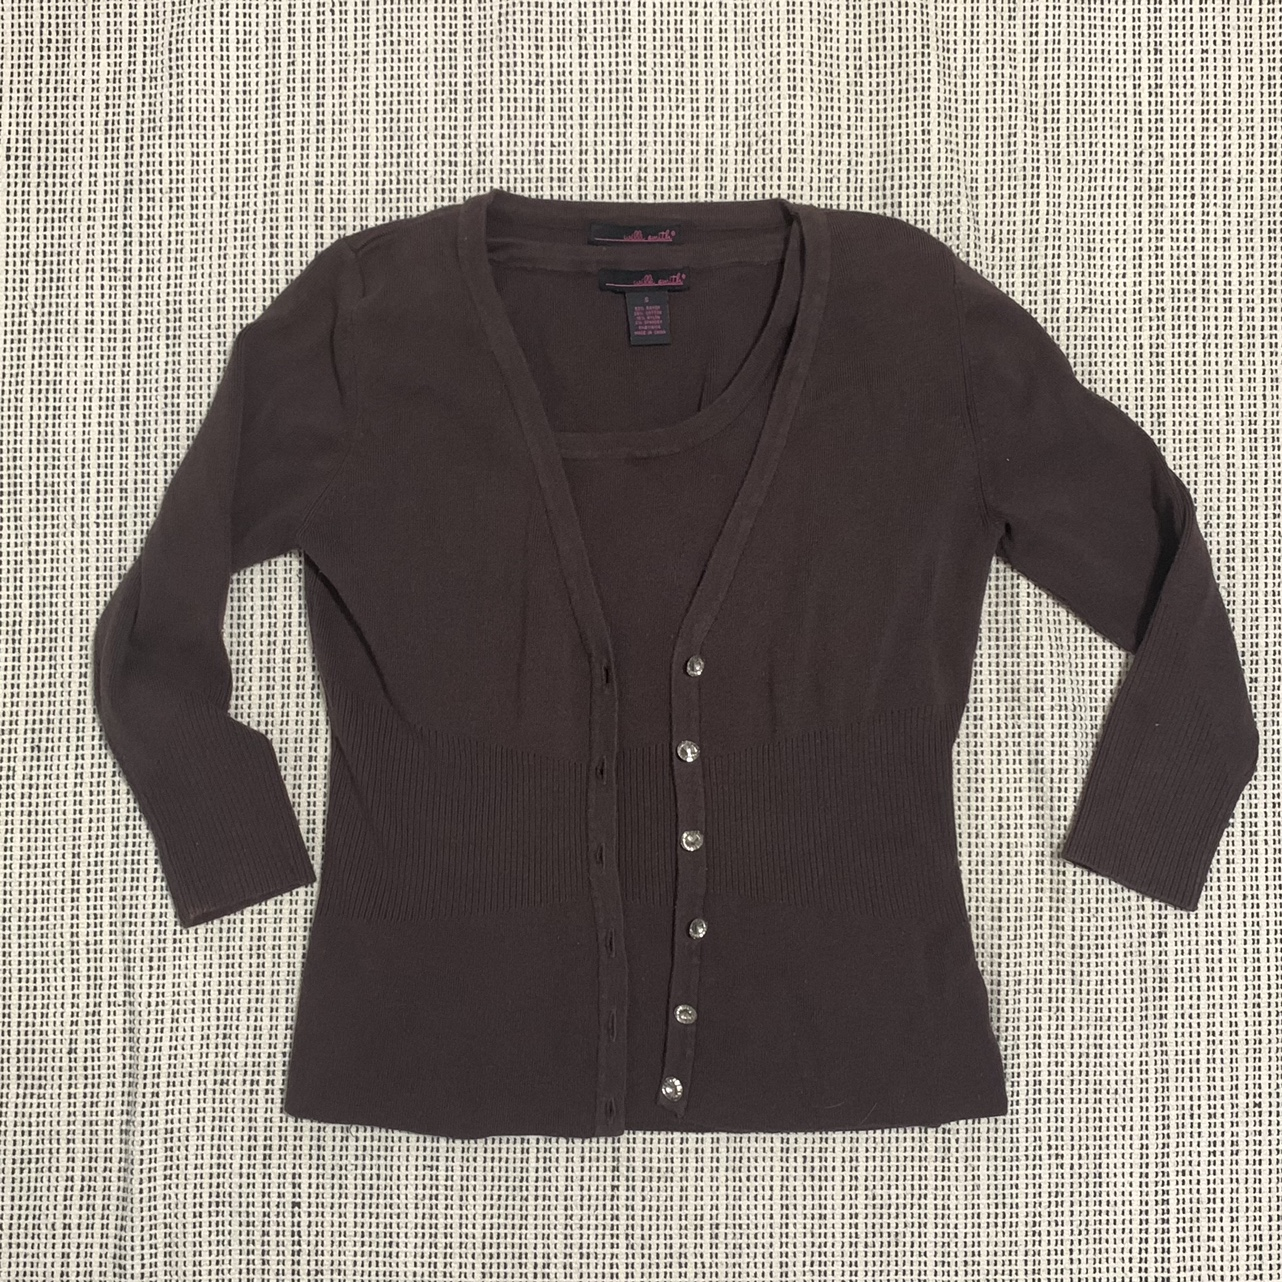 Product Image 1 - Brown knit cardigan only